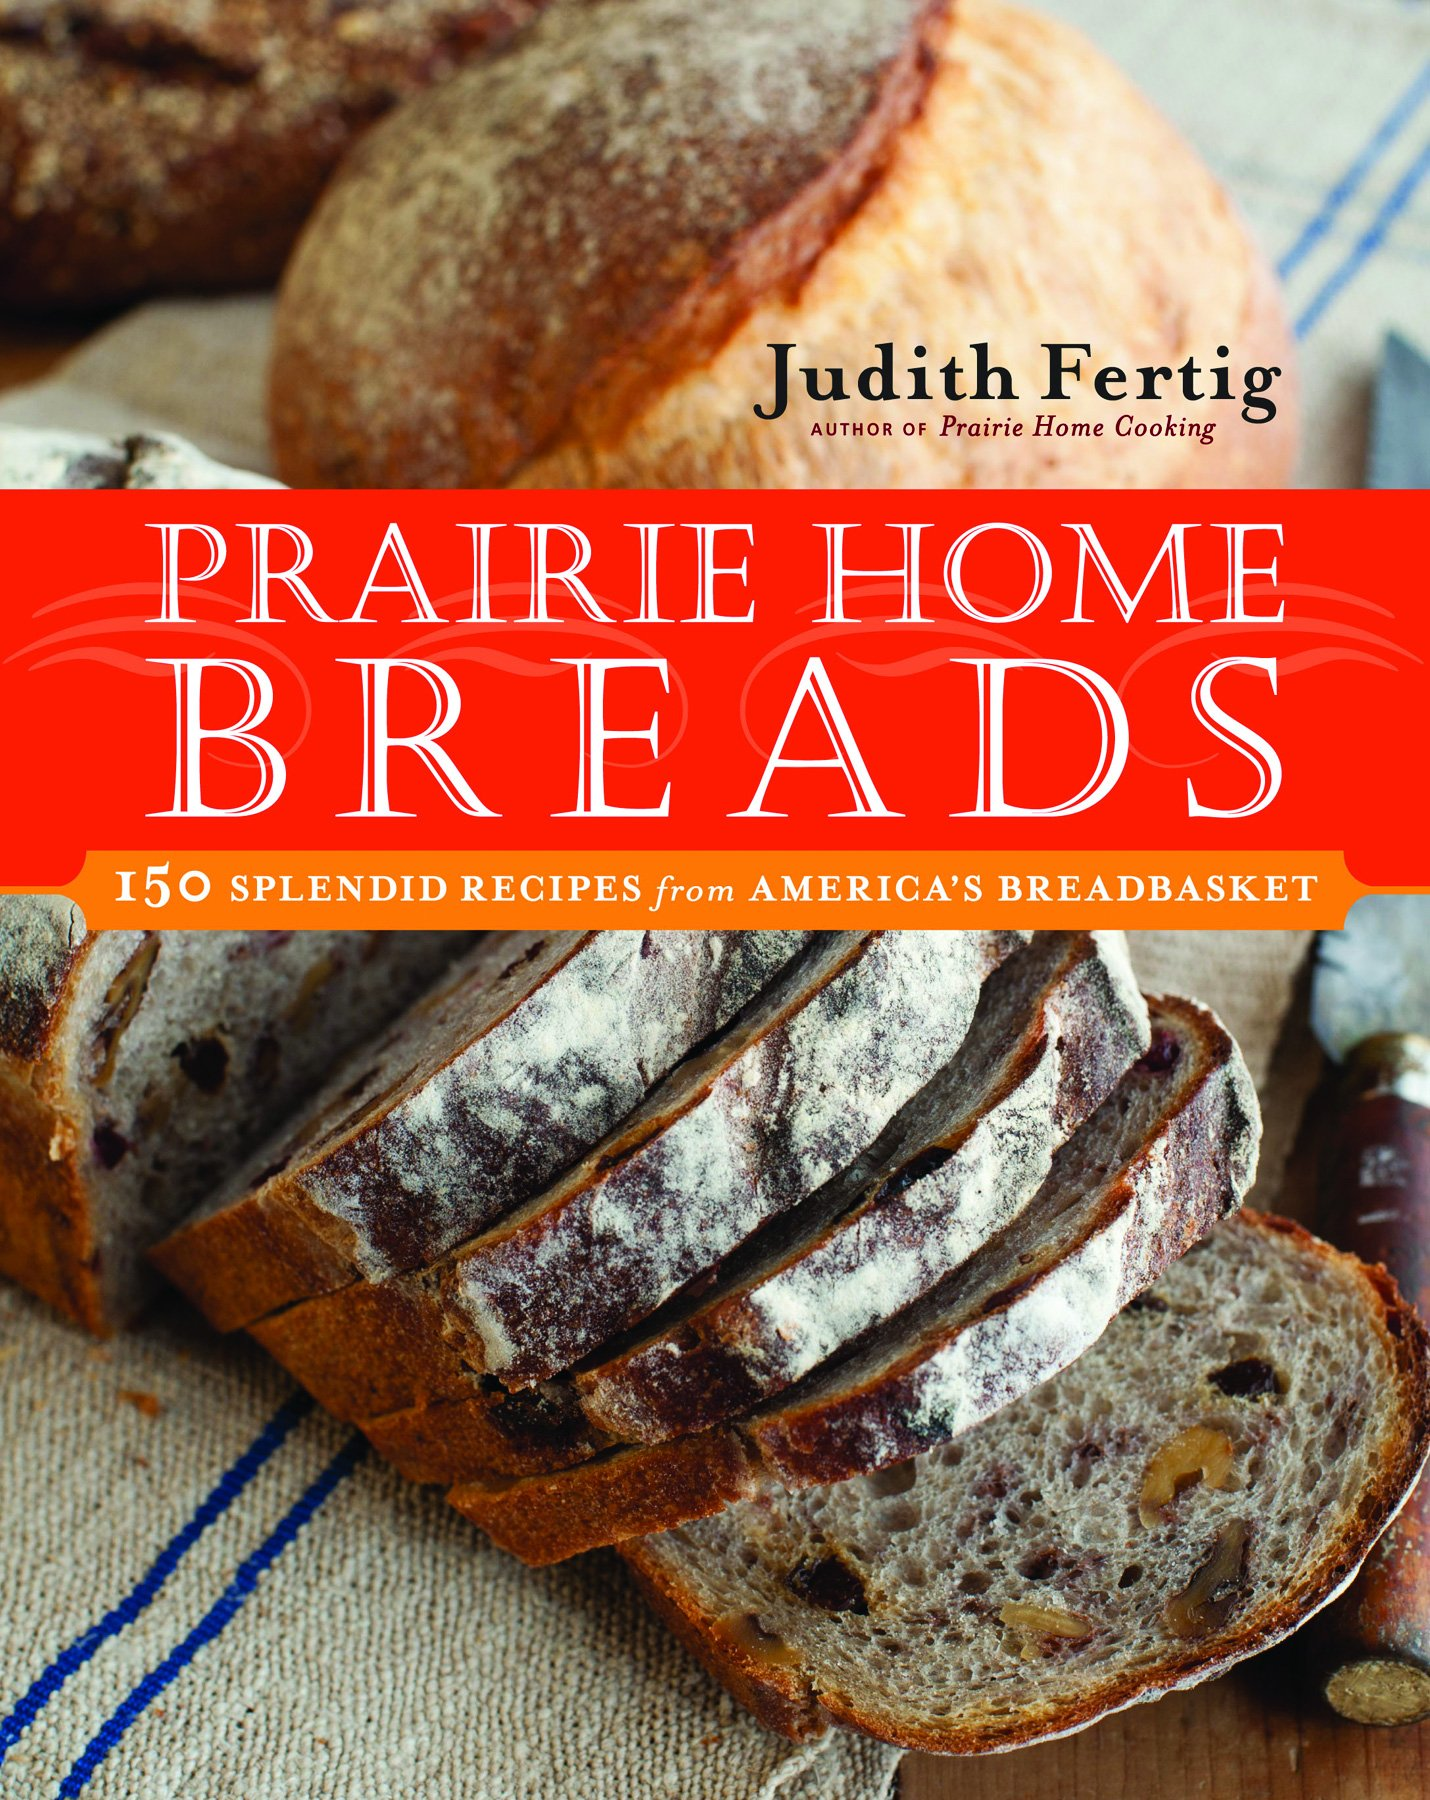 Download Prairie Home Breads: 150 Splendid Recipes from America's Breadbasket pdf